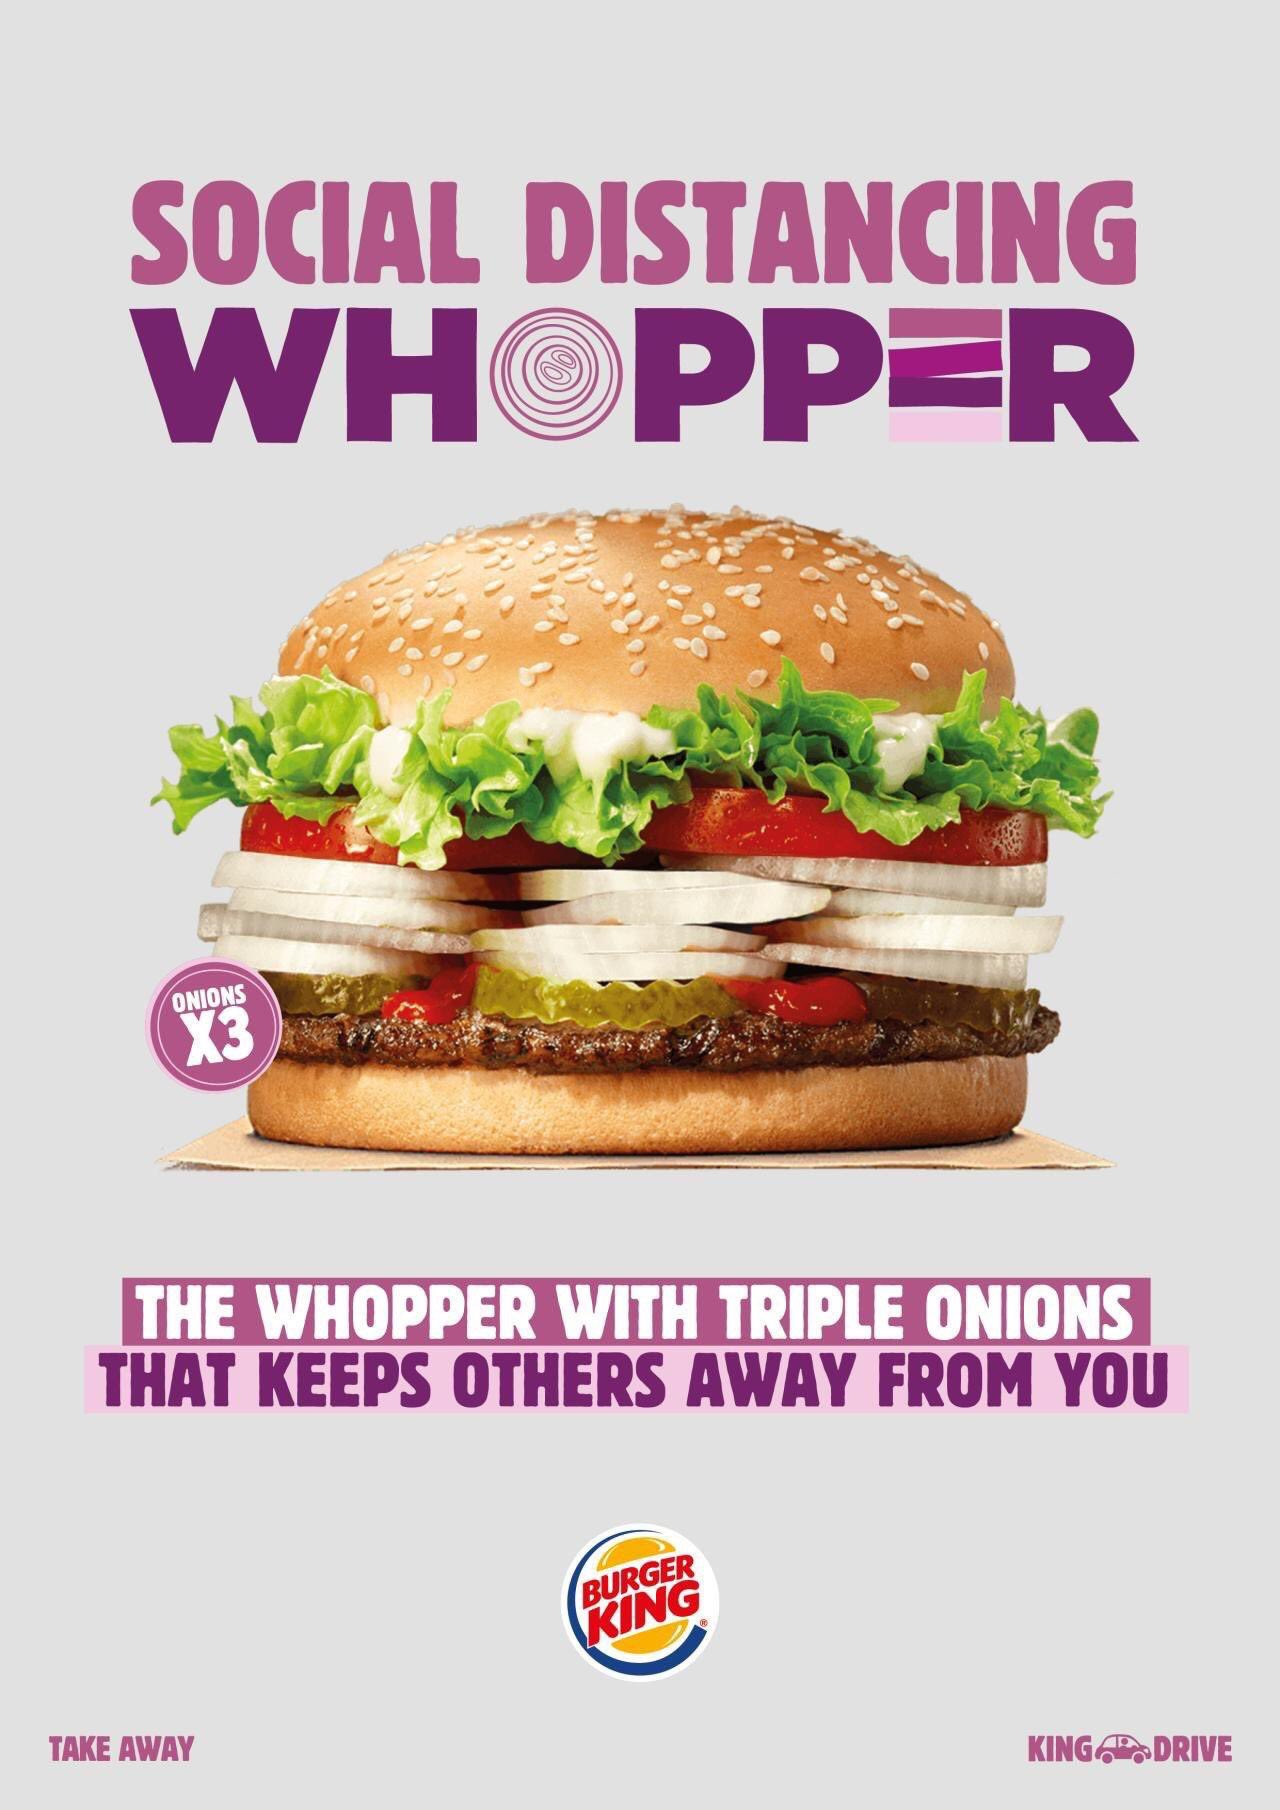 campaña burger king social distancing whooper